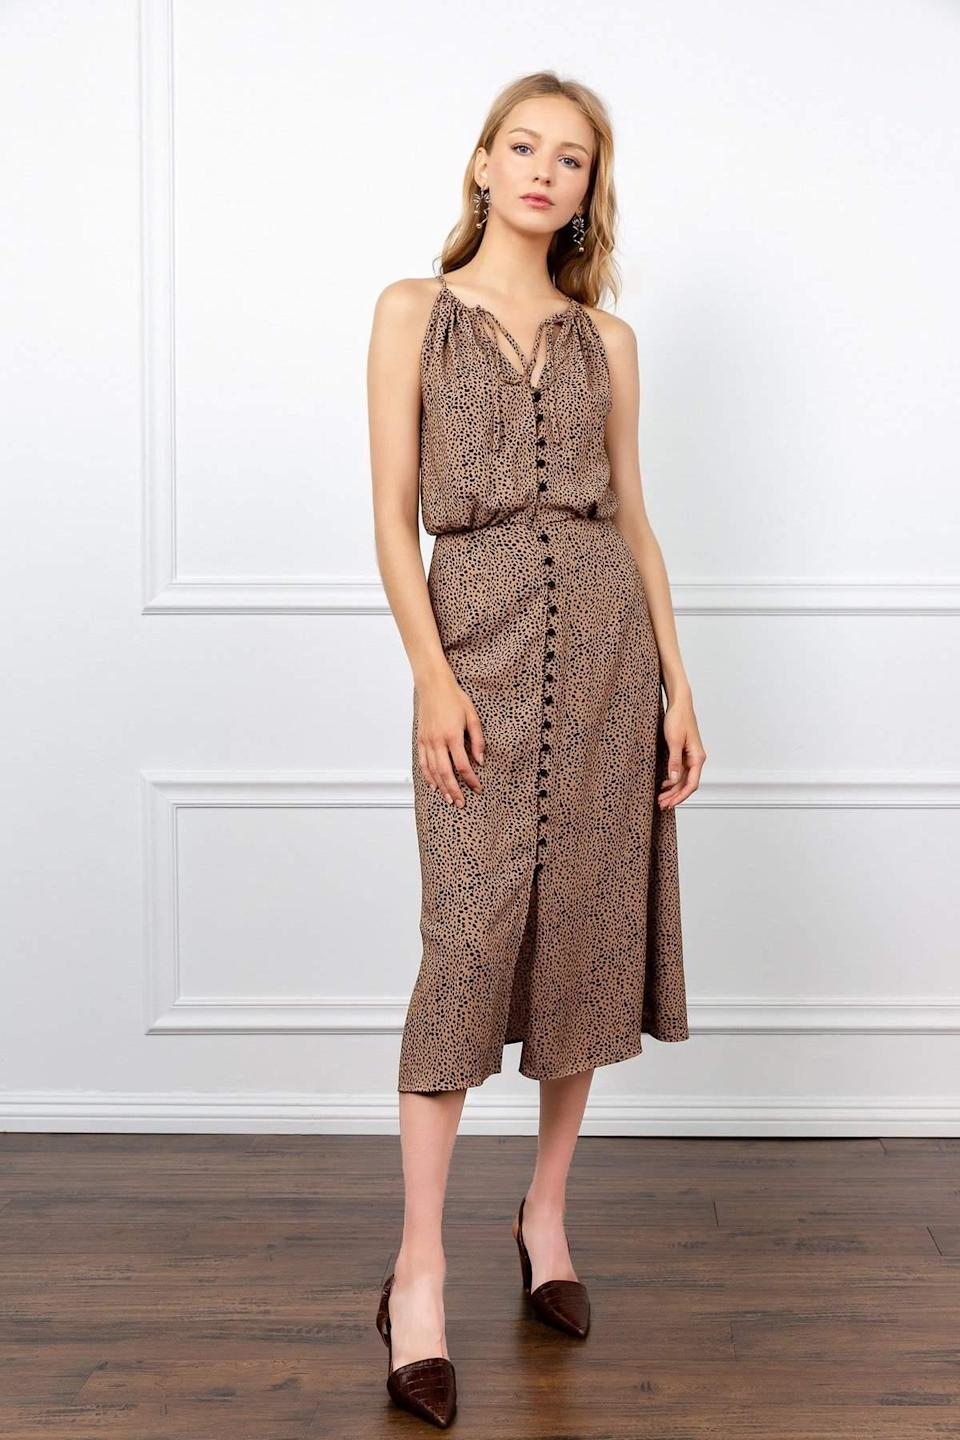 """<br> <br> <strong>J.ING</strong> Charlene Cheetah Midi Dress, $, available at <a href=""""https://go.skimresources.com/?id=30283X879131&url=https%3A%2F%2Fjingus.com%2Fcollections%2Fdresses-for-women-j-ing%2Fproducts%2Fcharlene-cheetah-mini-dress"""" rel=""""nofollow noopener"""" target=""""_blank"""" data-ylk=""""slk:J.ING"""" class=""""link rapid-noclick-resp"""">J.ING</a>"""